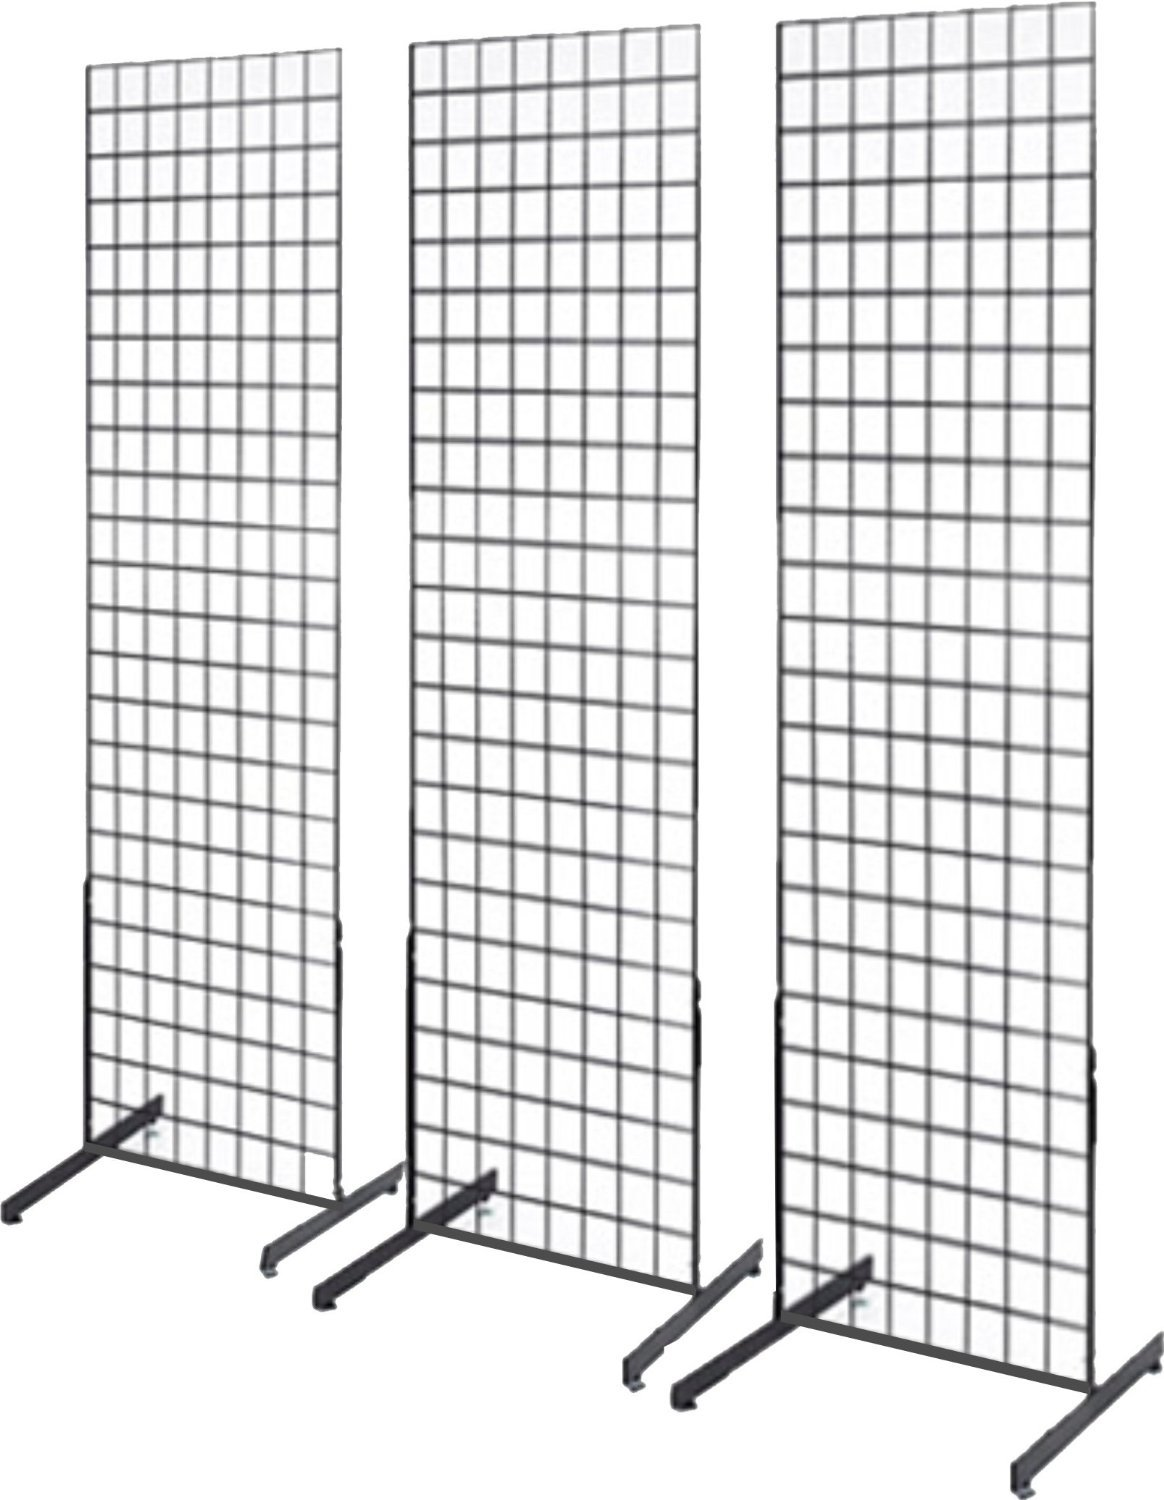 Only Hangers 2' x 6' Grid Wall Panel Floorstanding Display Fixture with Deluxe T-Style Base, Black. Three-Pack Combo. by Only Hangers